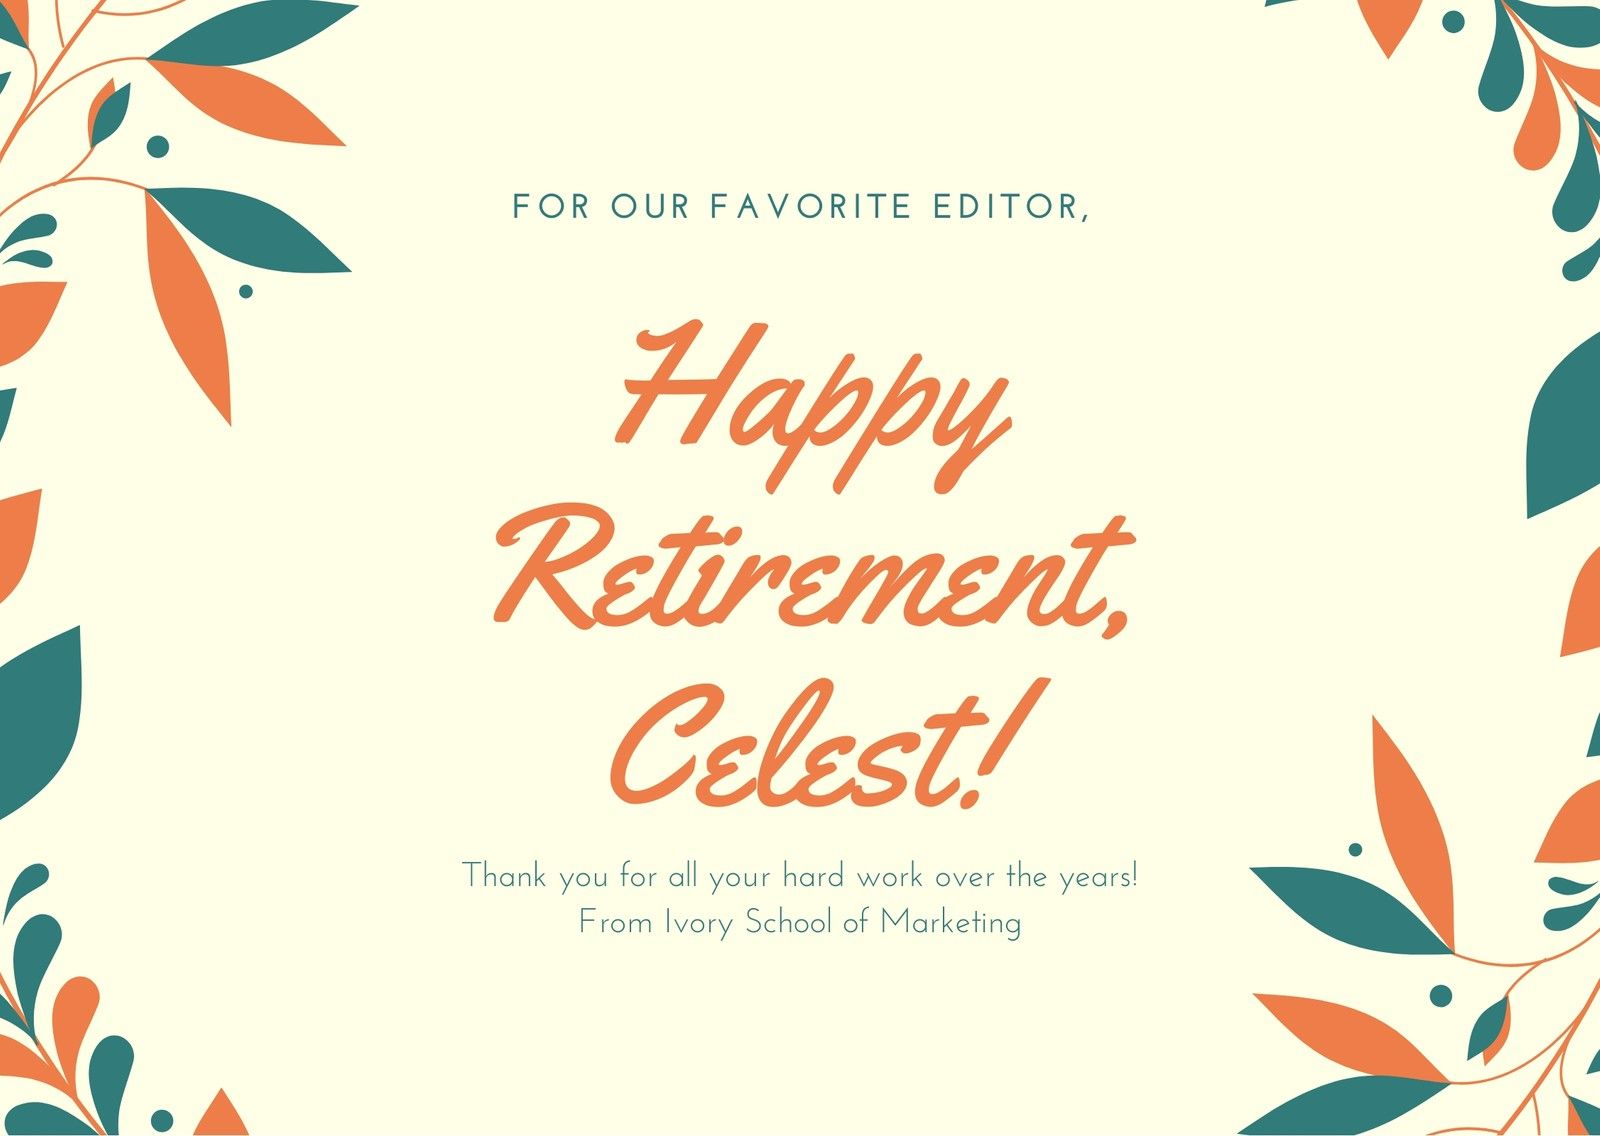 Orange Dark Teal Illustrated Wreath Retirement Card For Retirement Card Template Business Prof Happy Retirement Cards Retirement Cards Funny Retirement Cards